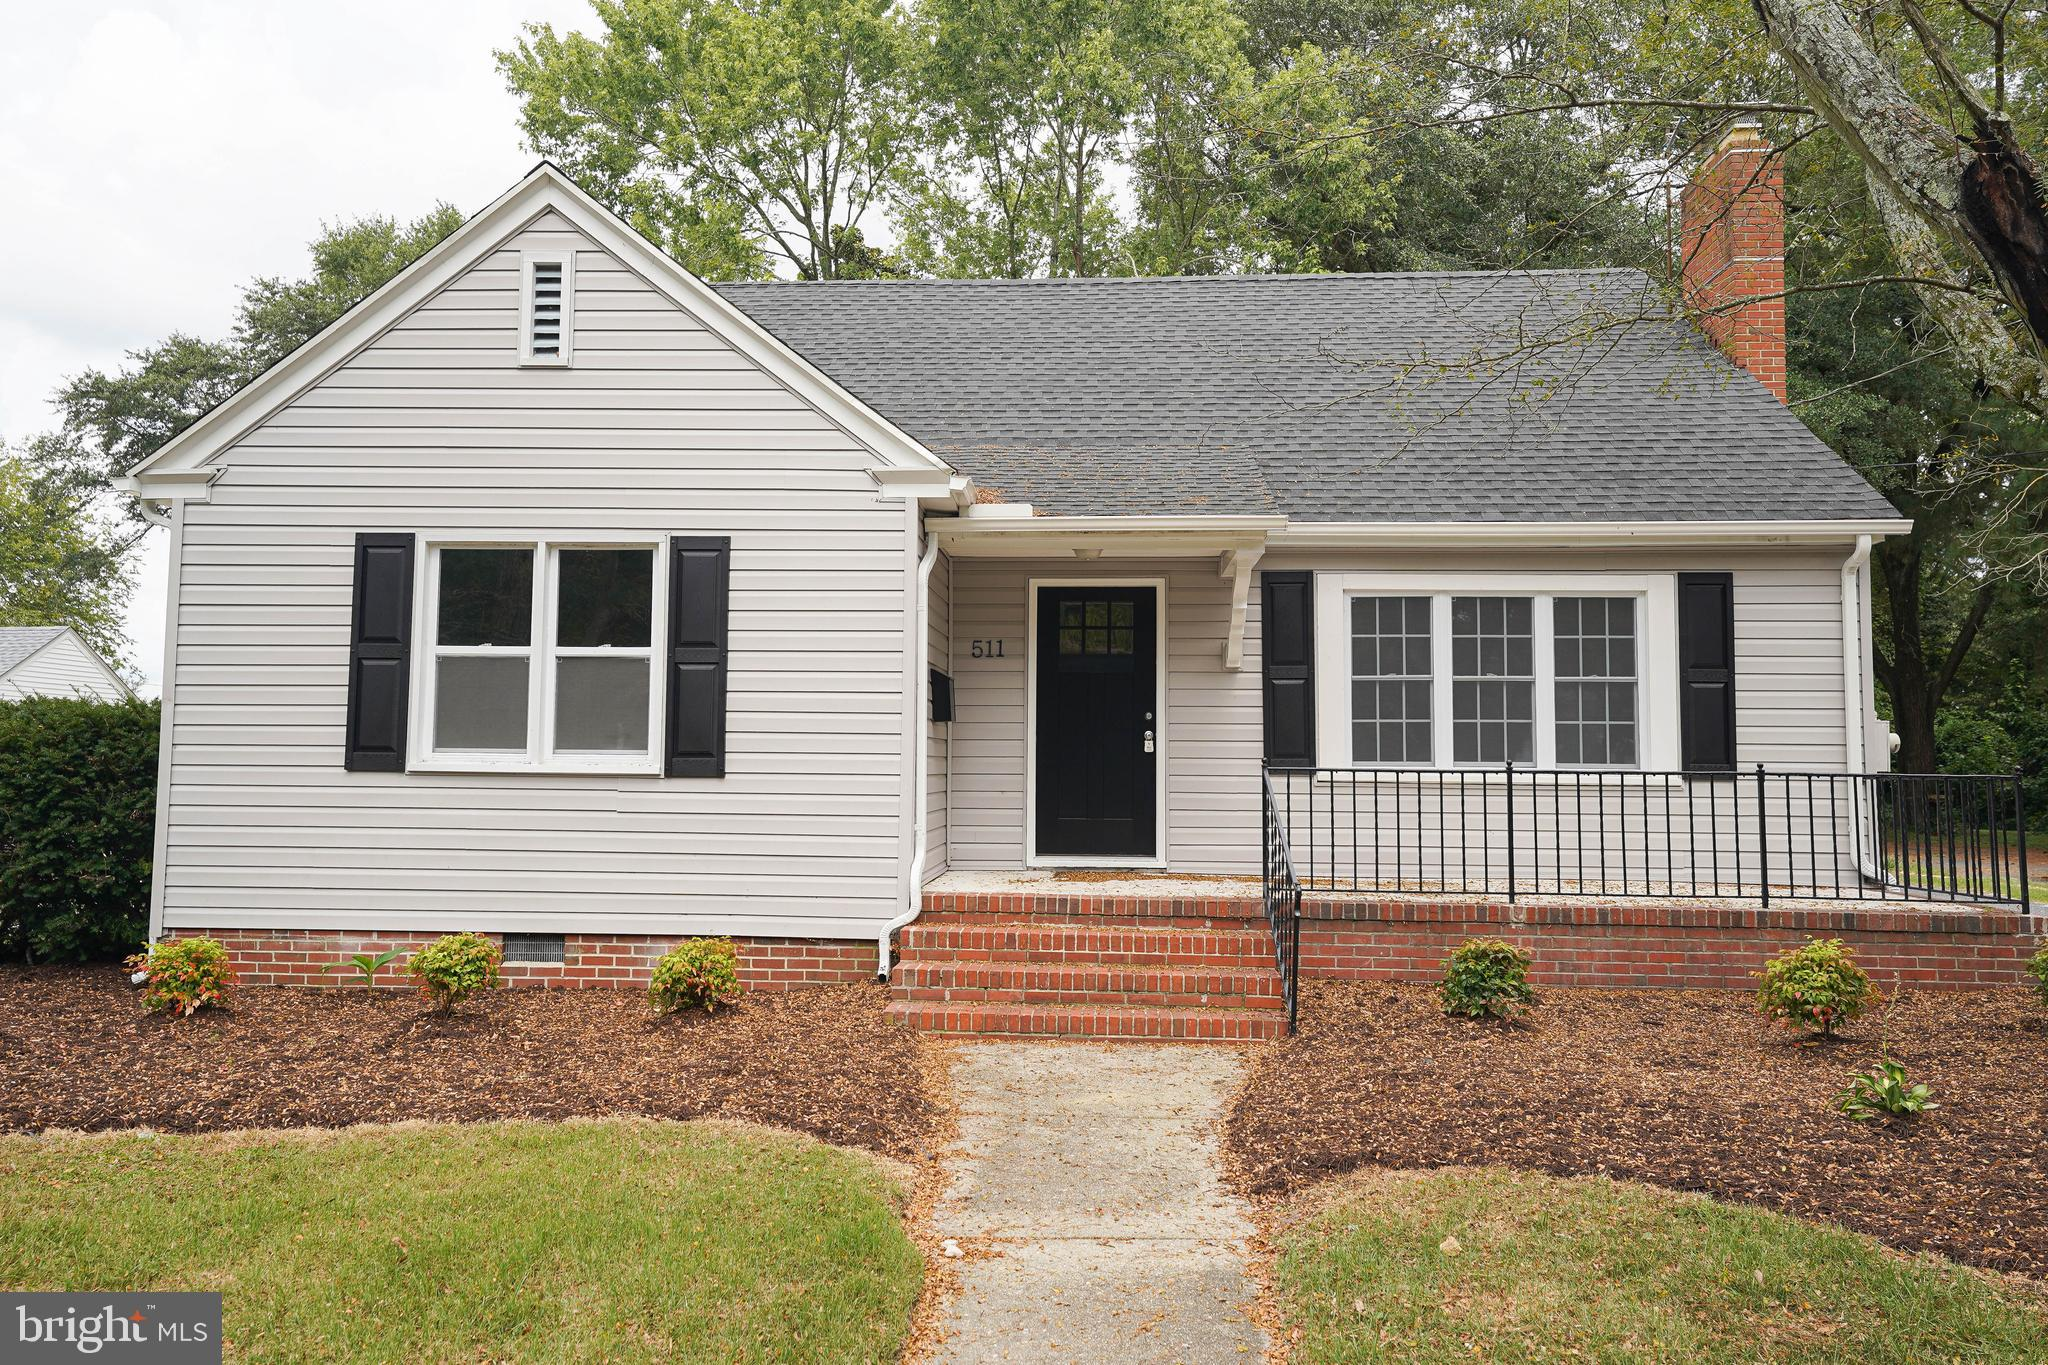 Move-in Ready - Why rent when you can own this adorable and affordable 4BR/2BA home just a block fro